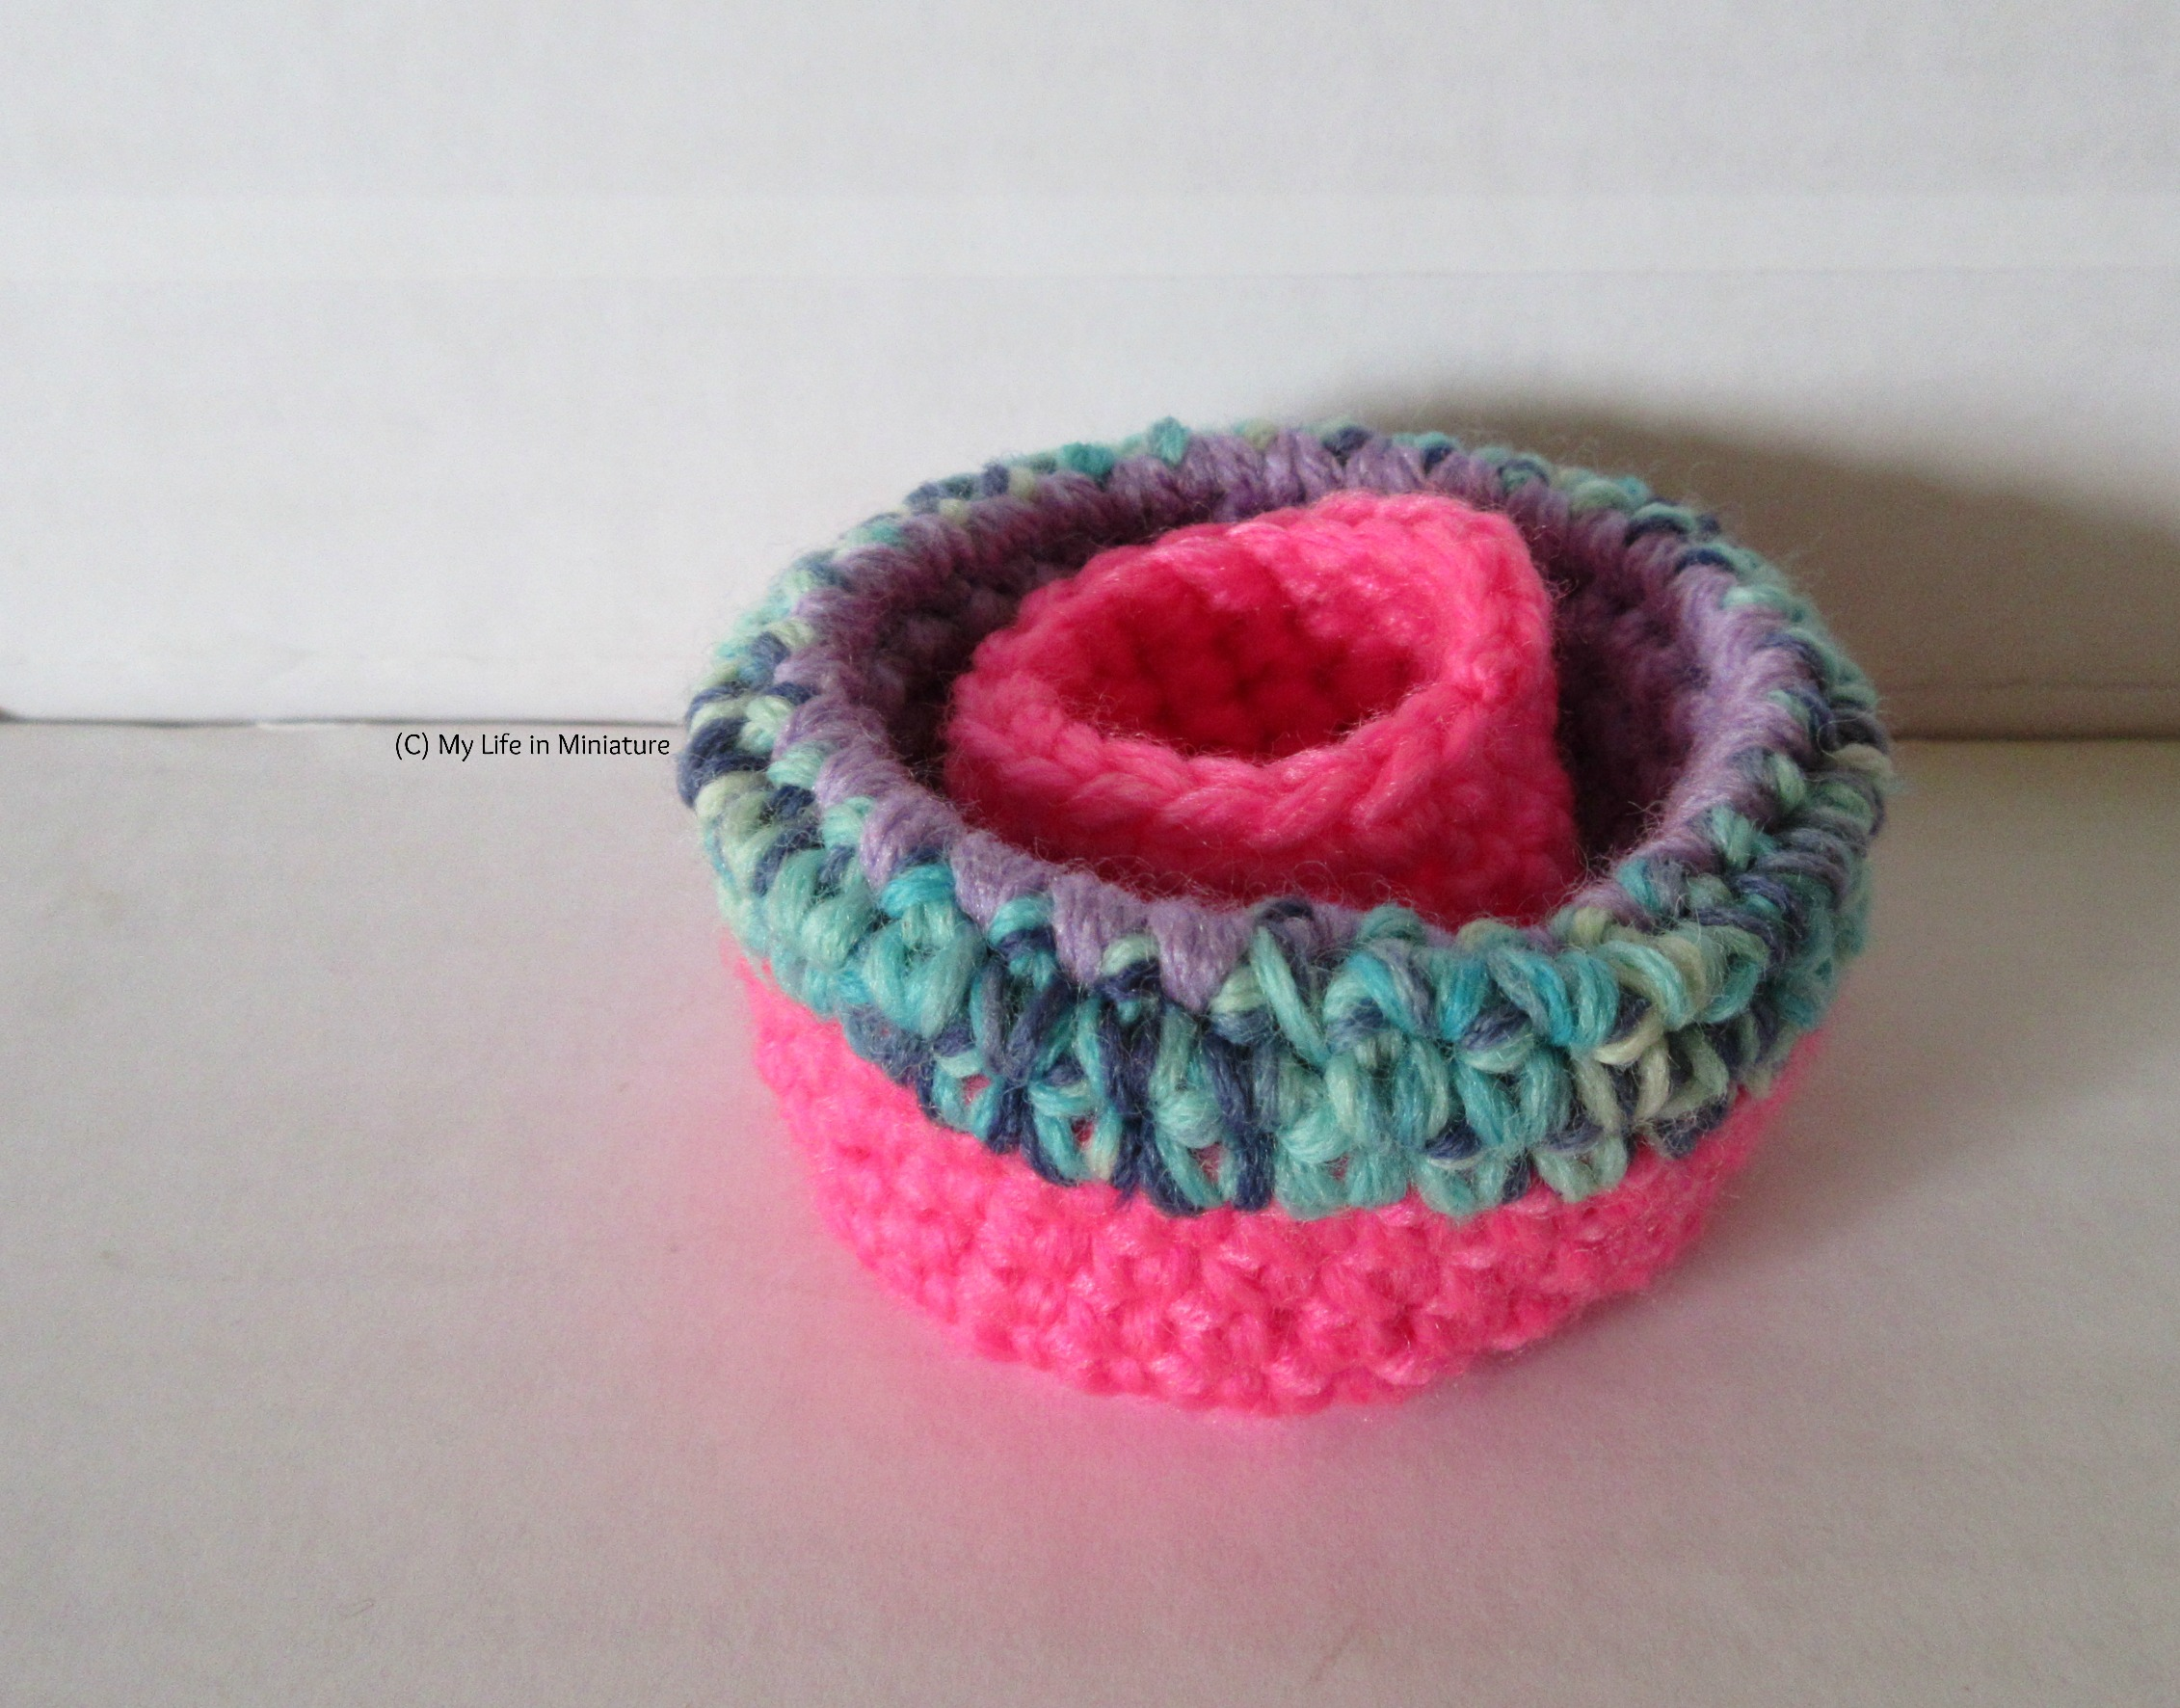 Image shows the larger birds' nest with its sides folded inwards, so the variegated blue yarn is visible. The small hot pink birds' nest is inside the larger one.